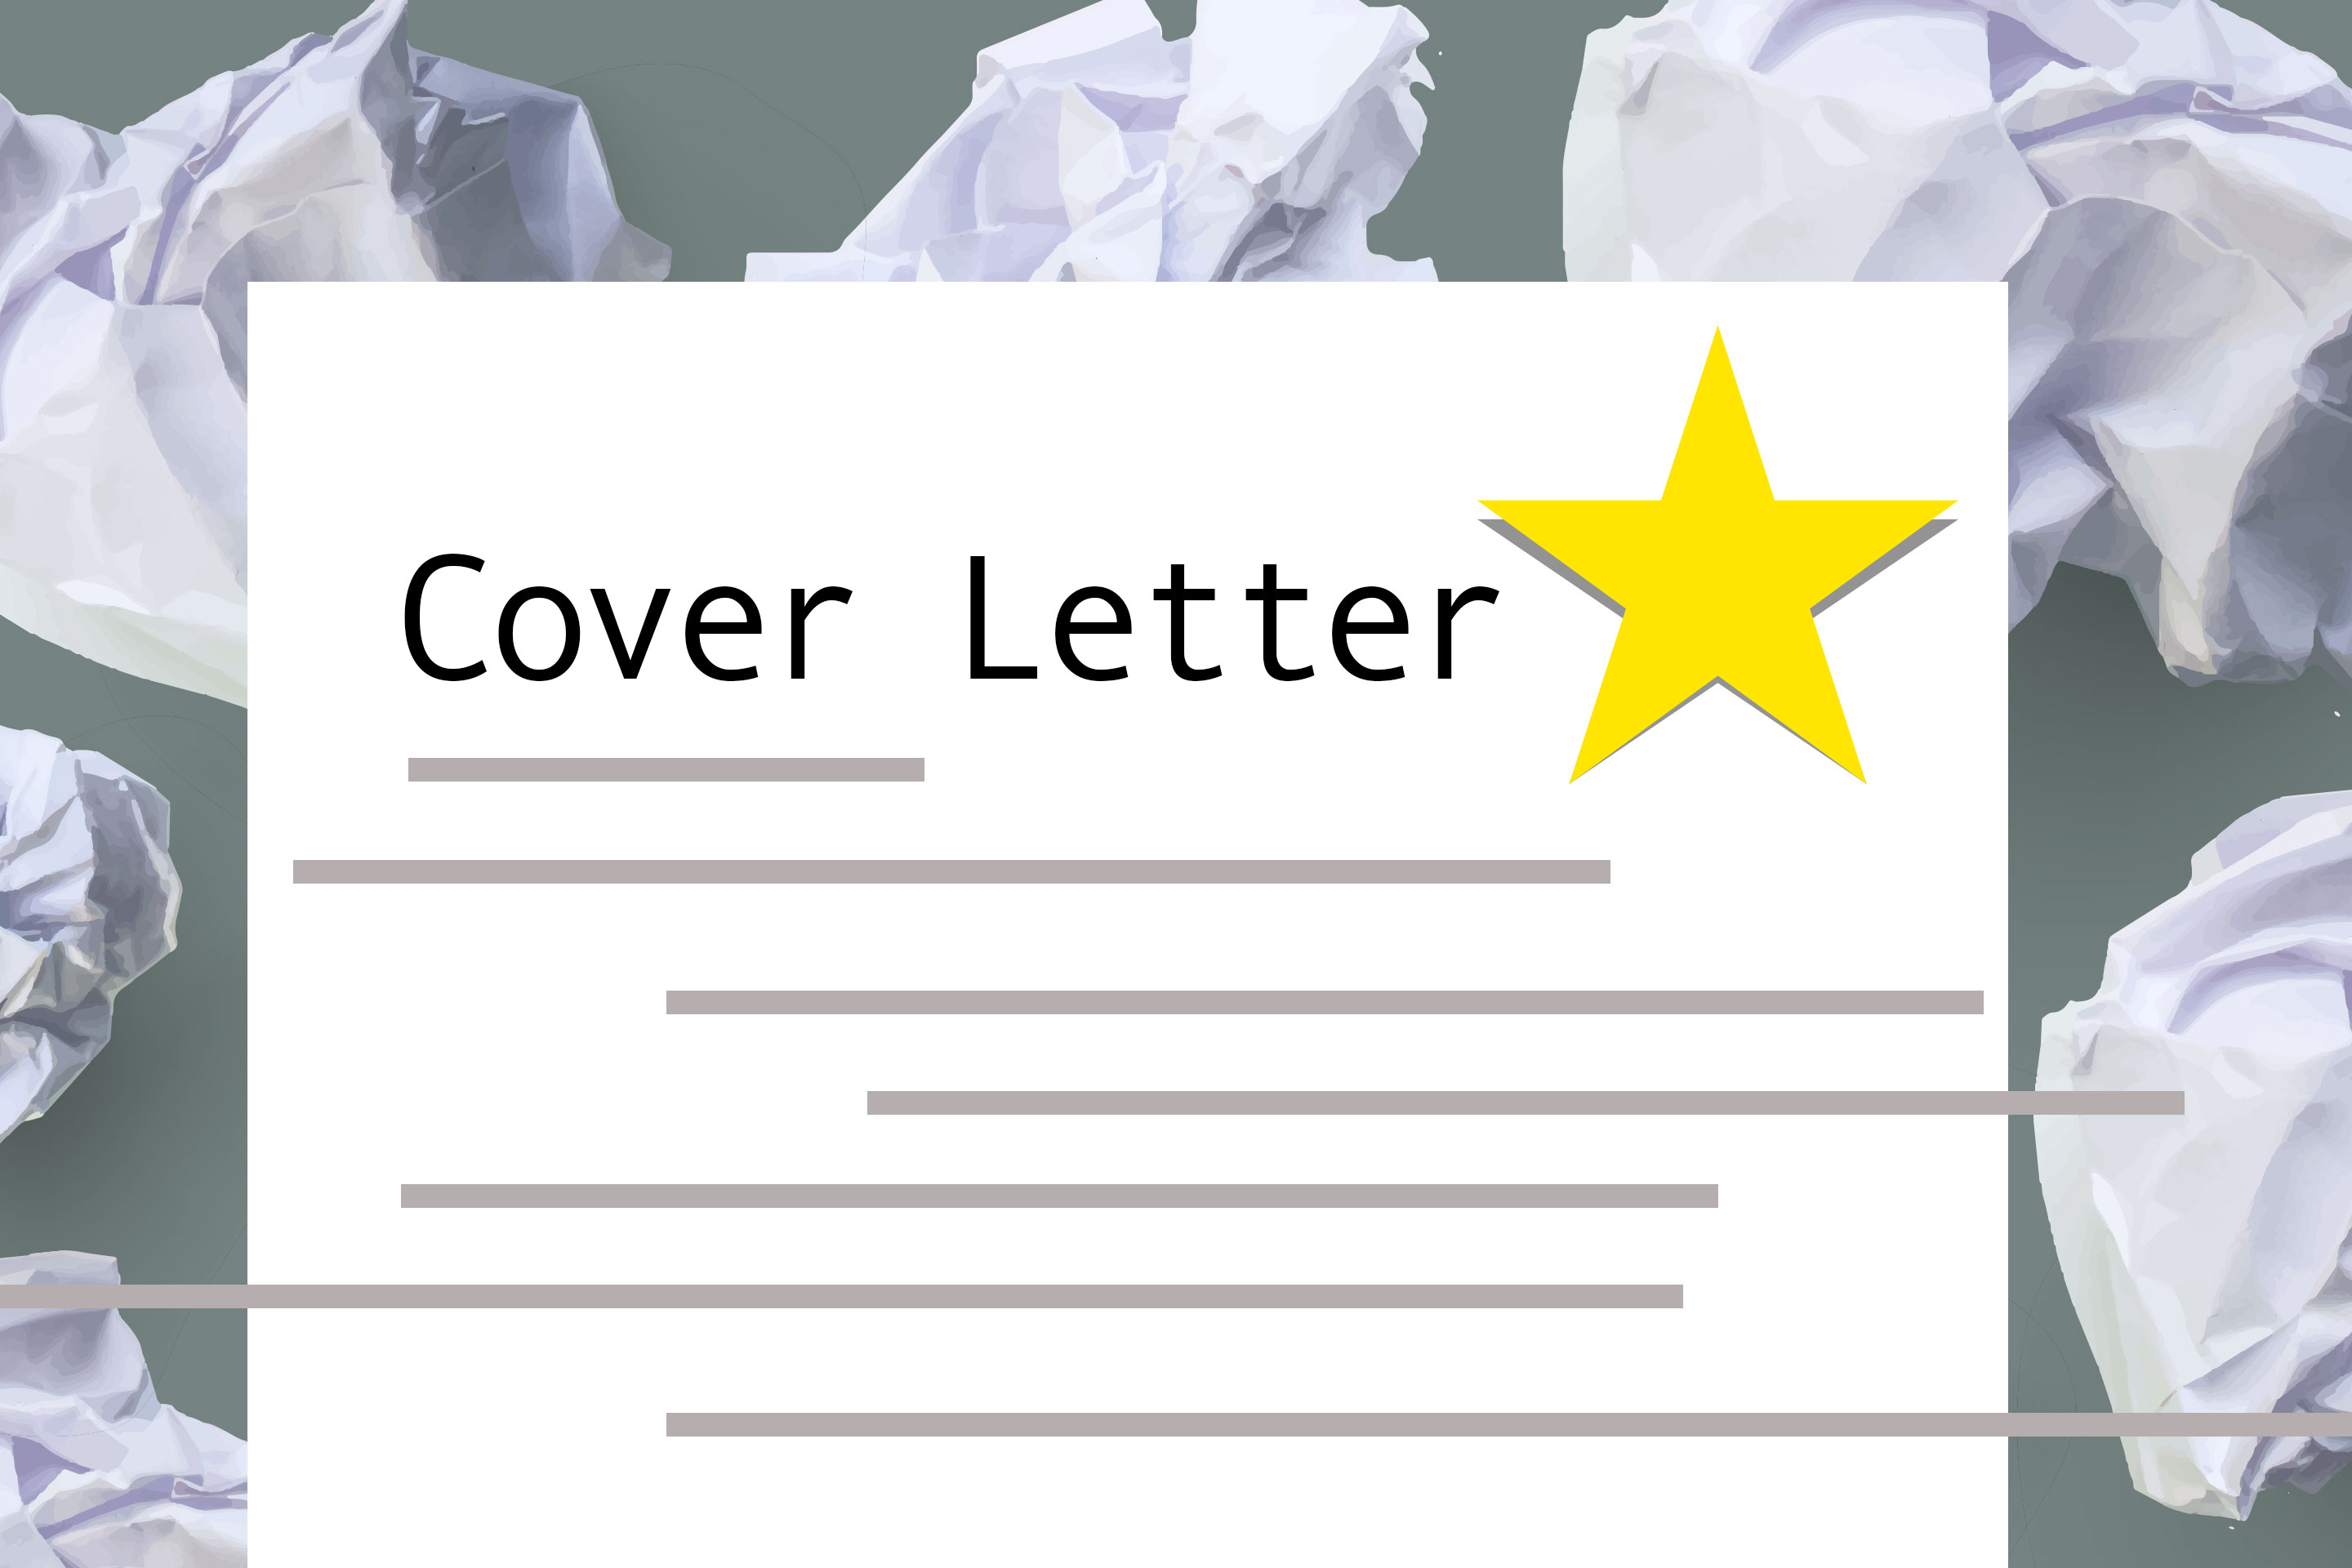 Short Cover Letter Manager Large Photos Delicious